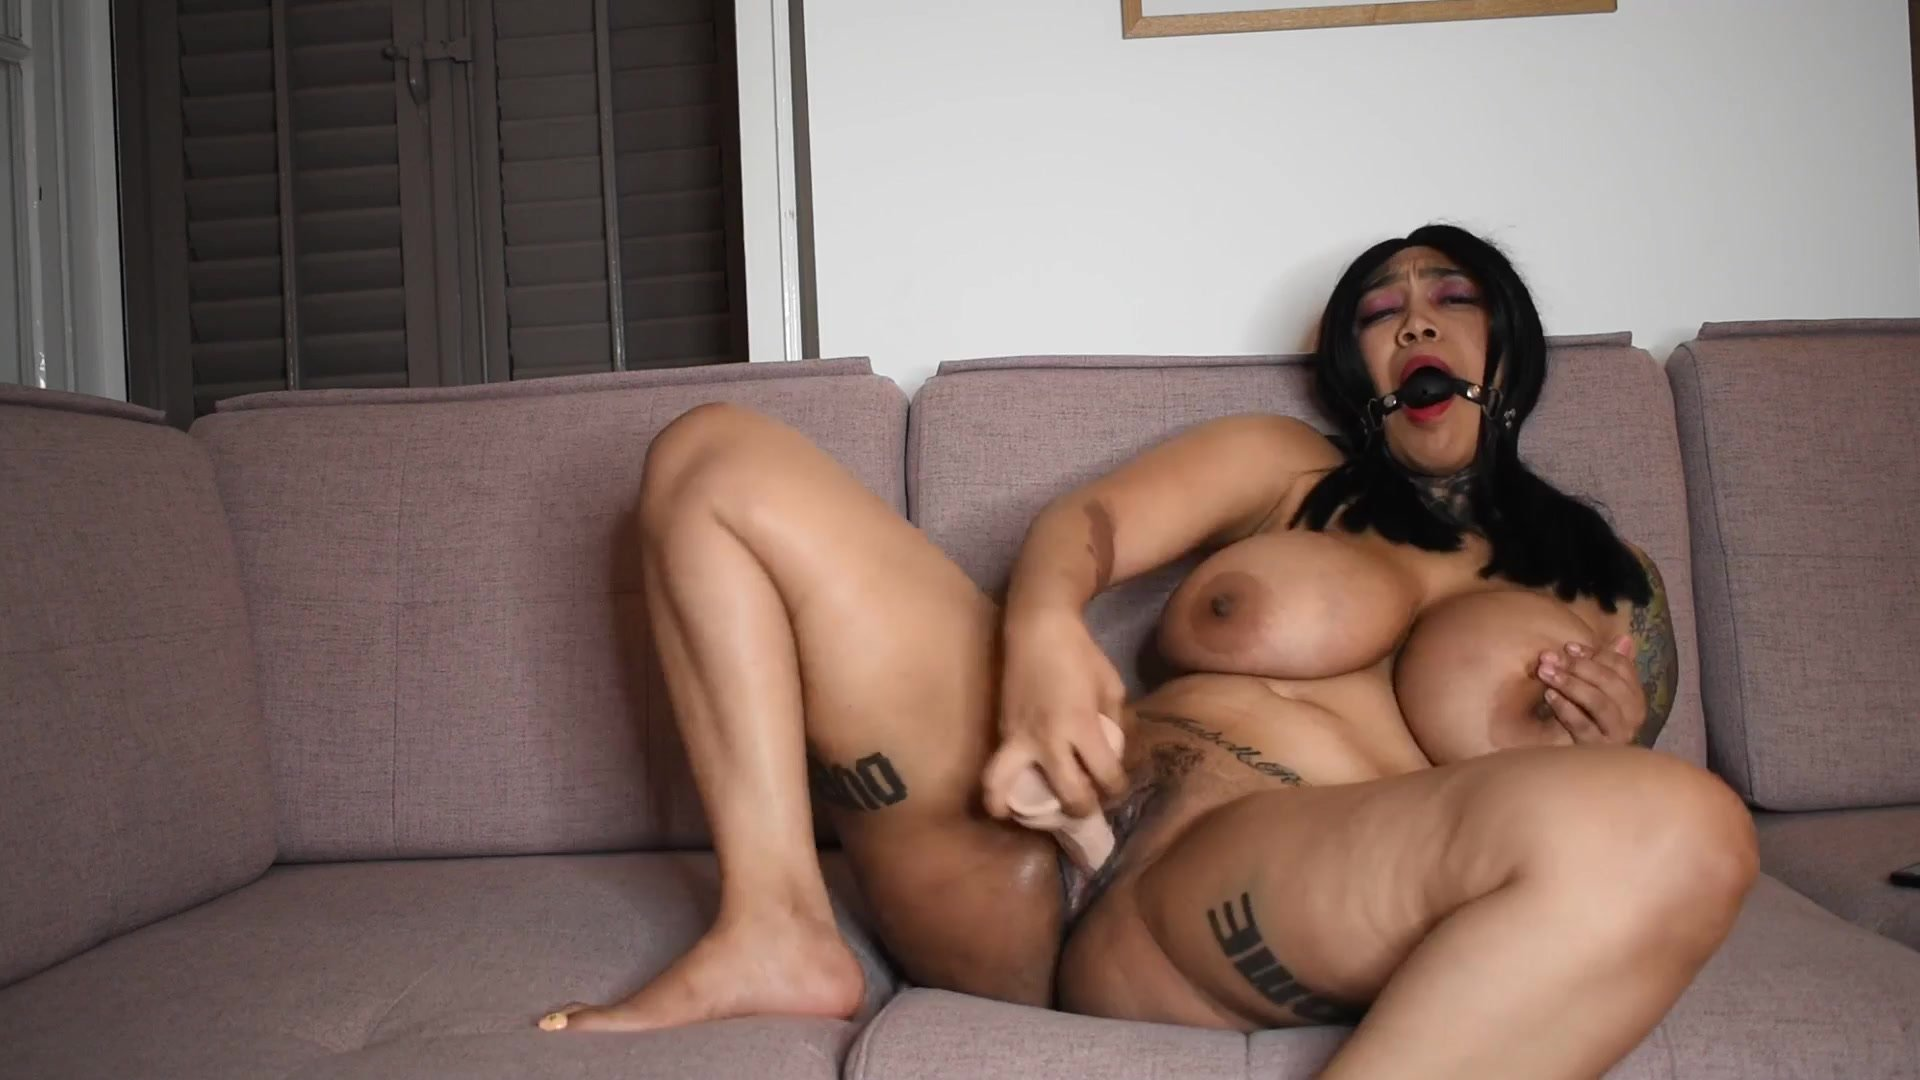 Cam slut With Dildo